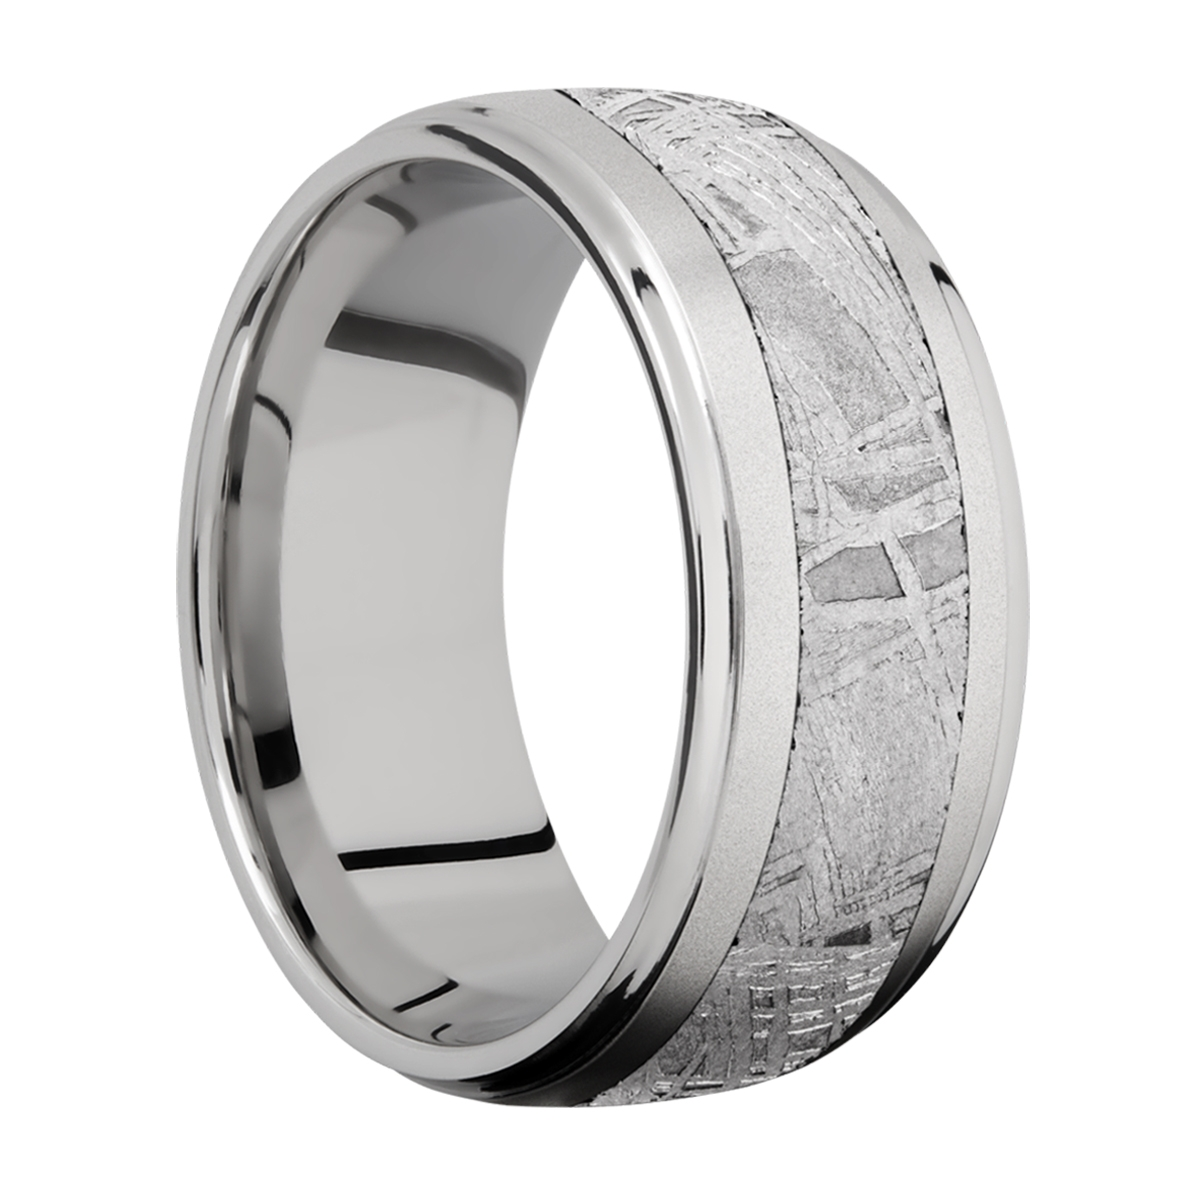 Lashbrook 10DGE15/METEORITE Titanium Wedding Ring or Band Alternative View 1